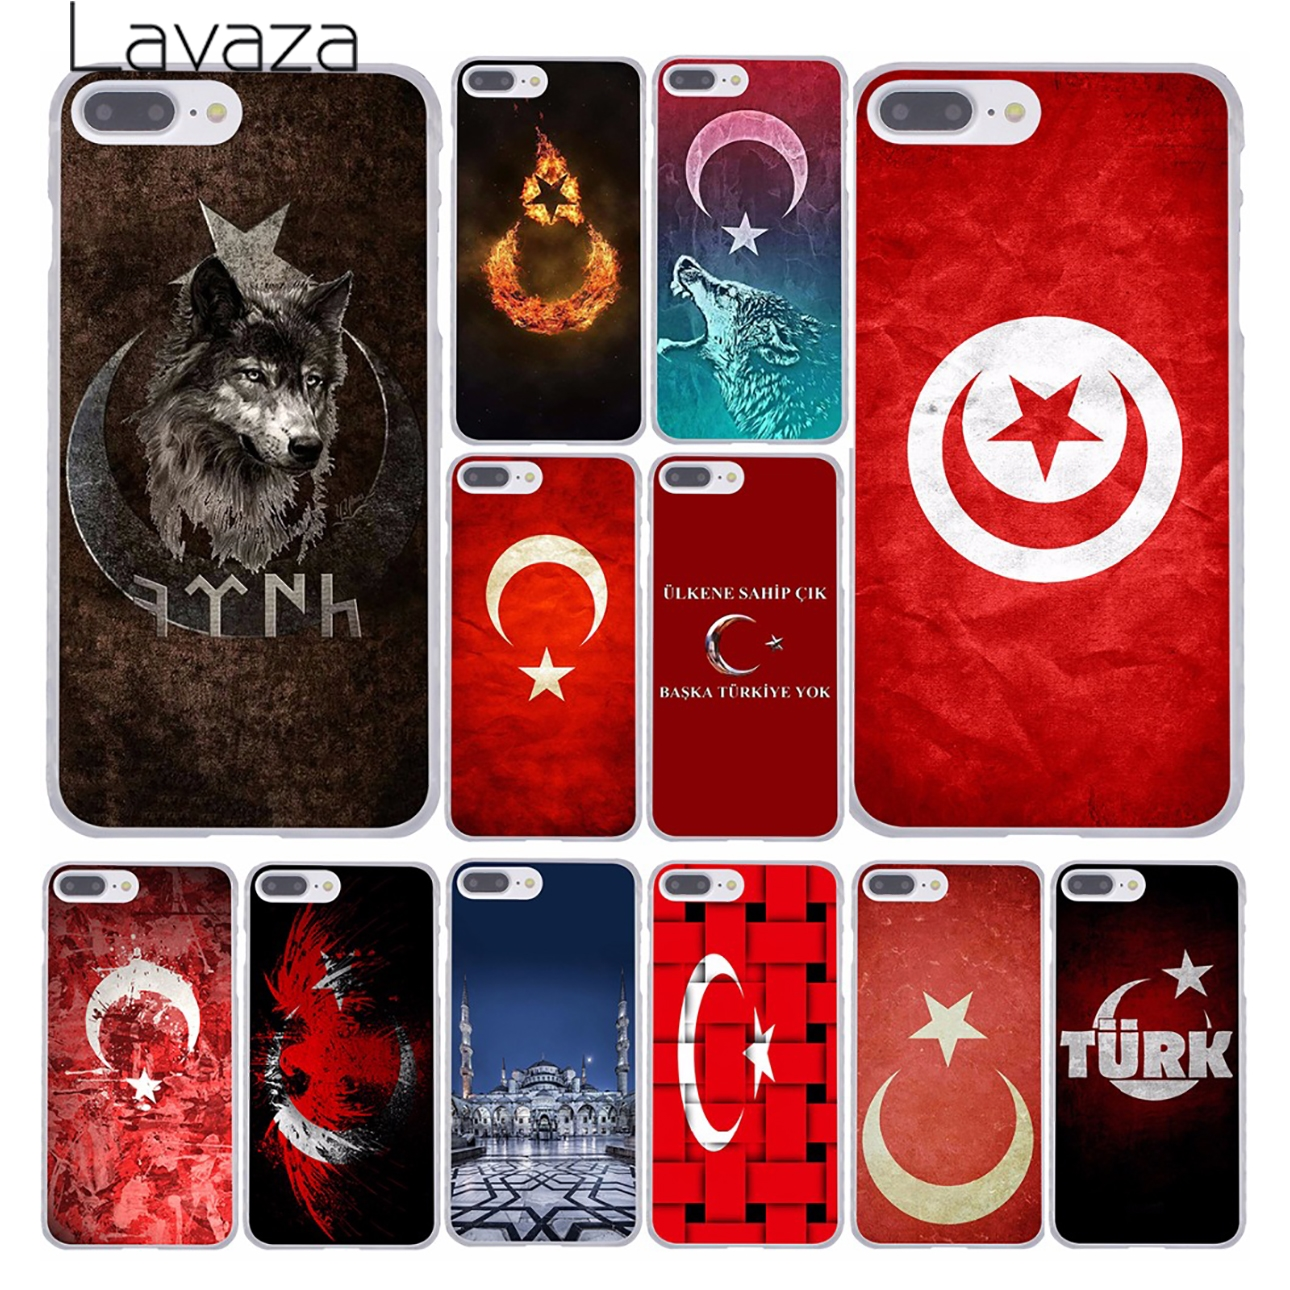 Turkey Flag Hard Case Transparent for iPhone 7 7 Plus 6 6s Plus 5 5S SE 5C 4 4S